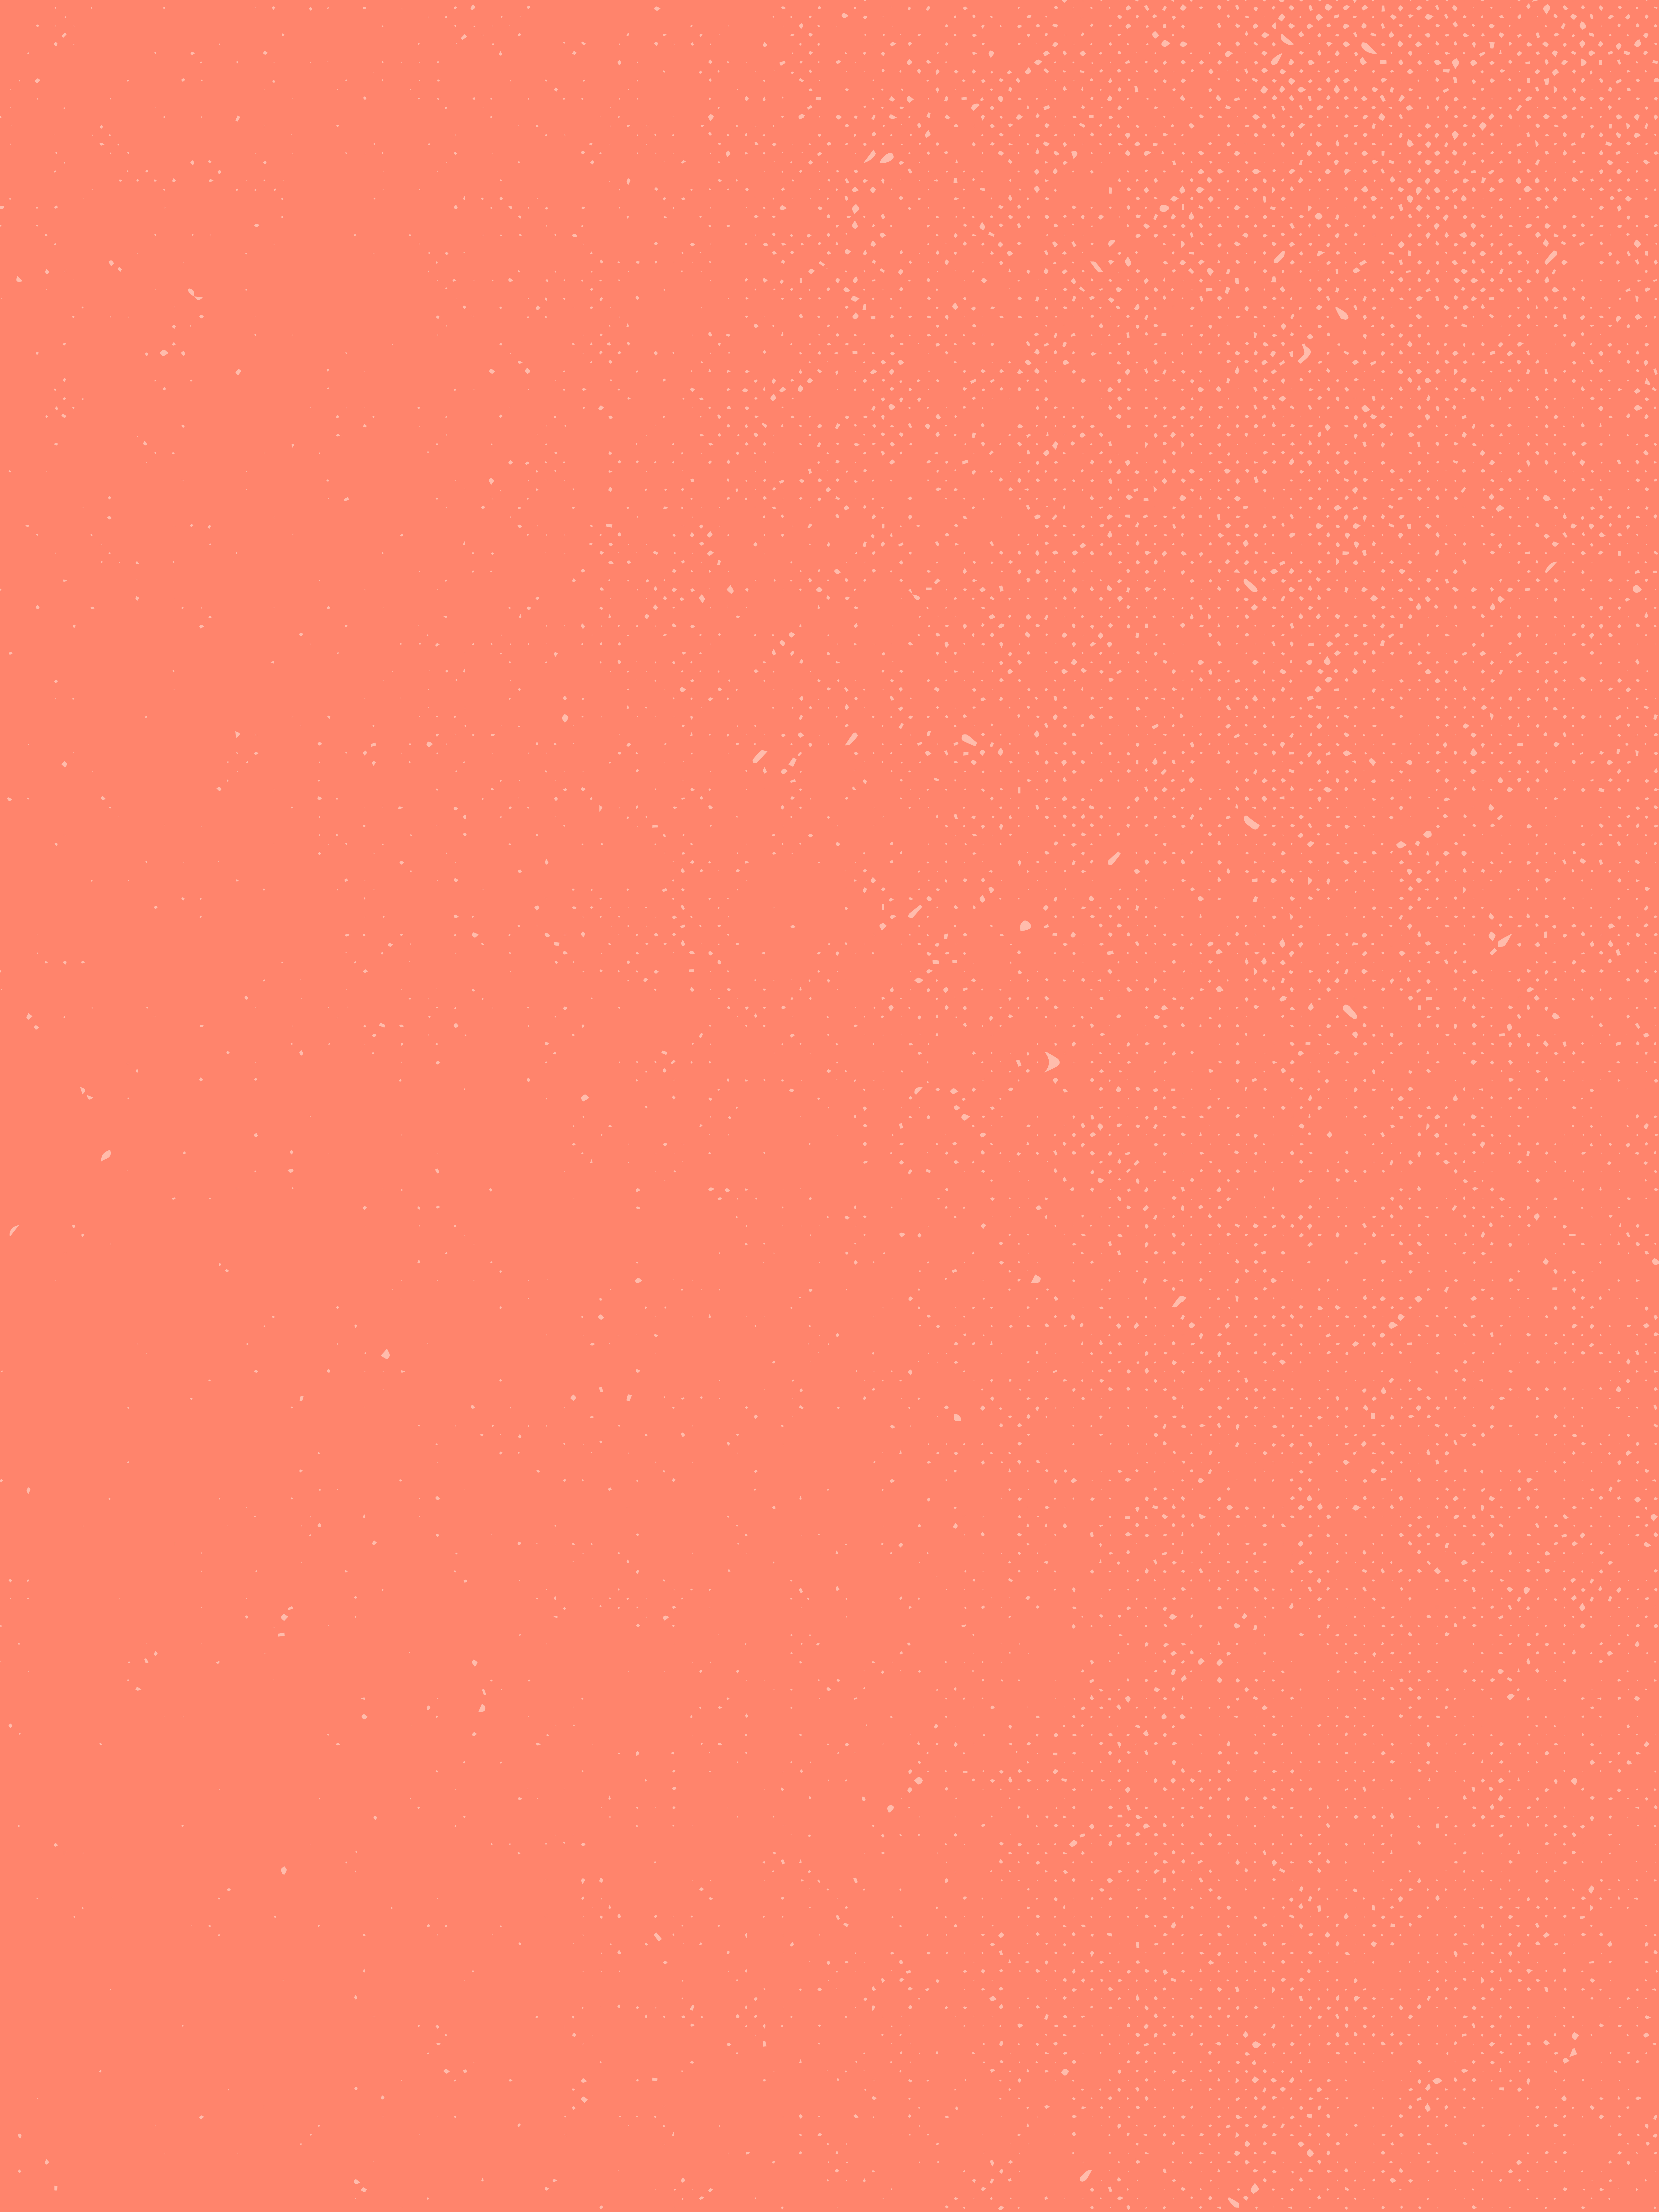 coral color wallpaper images pictures becuo